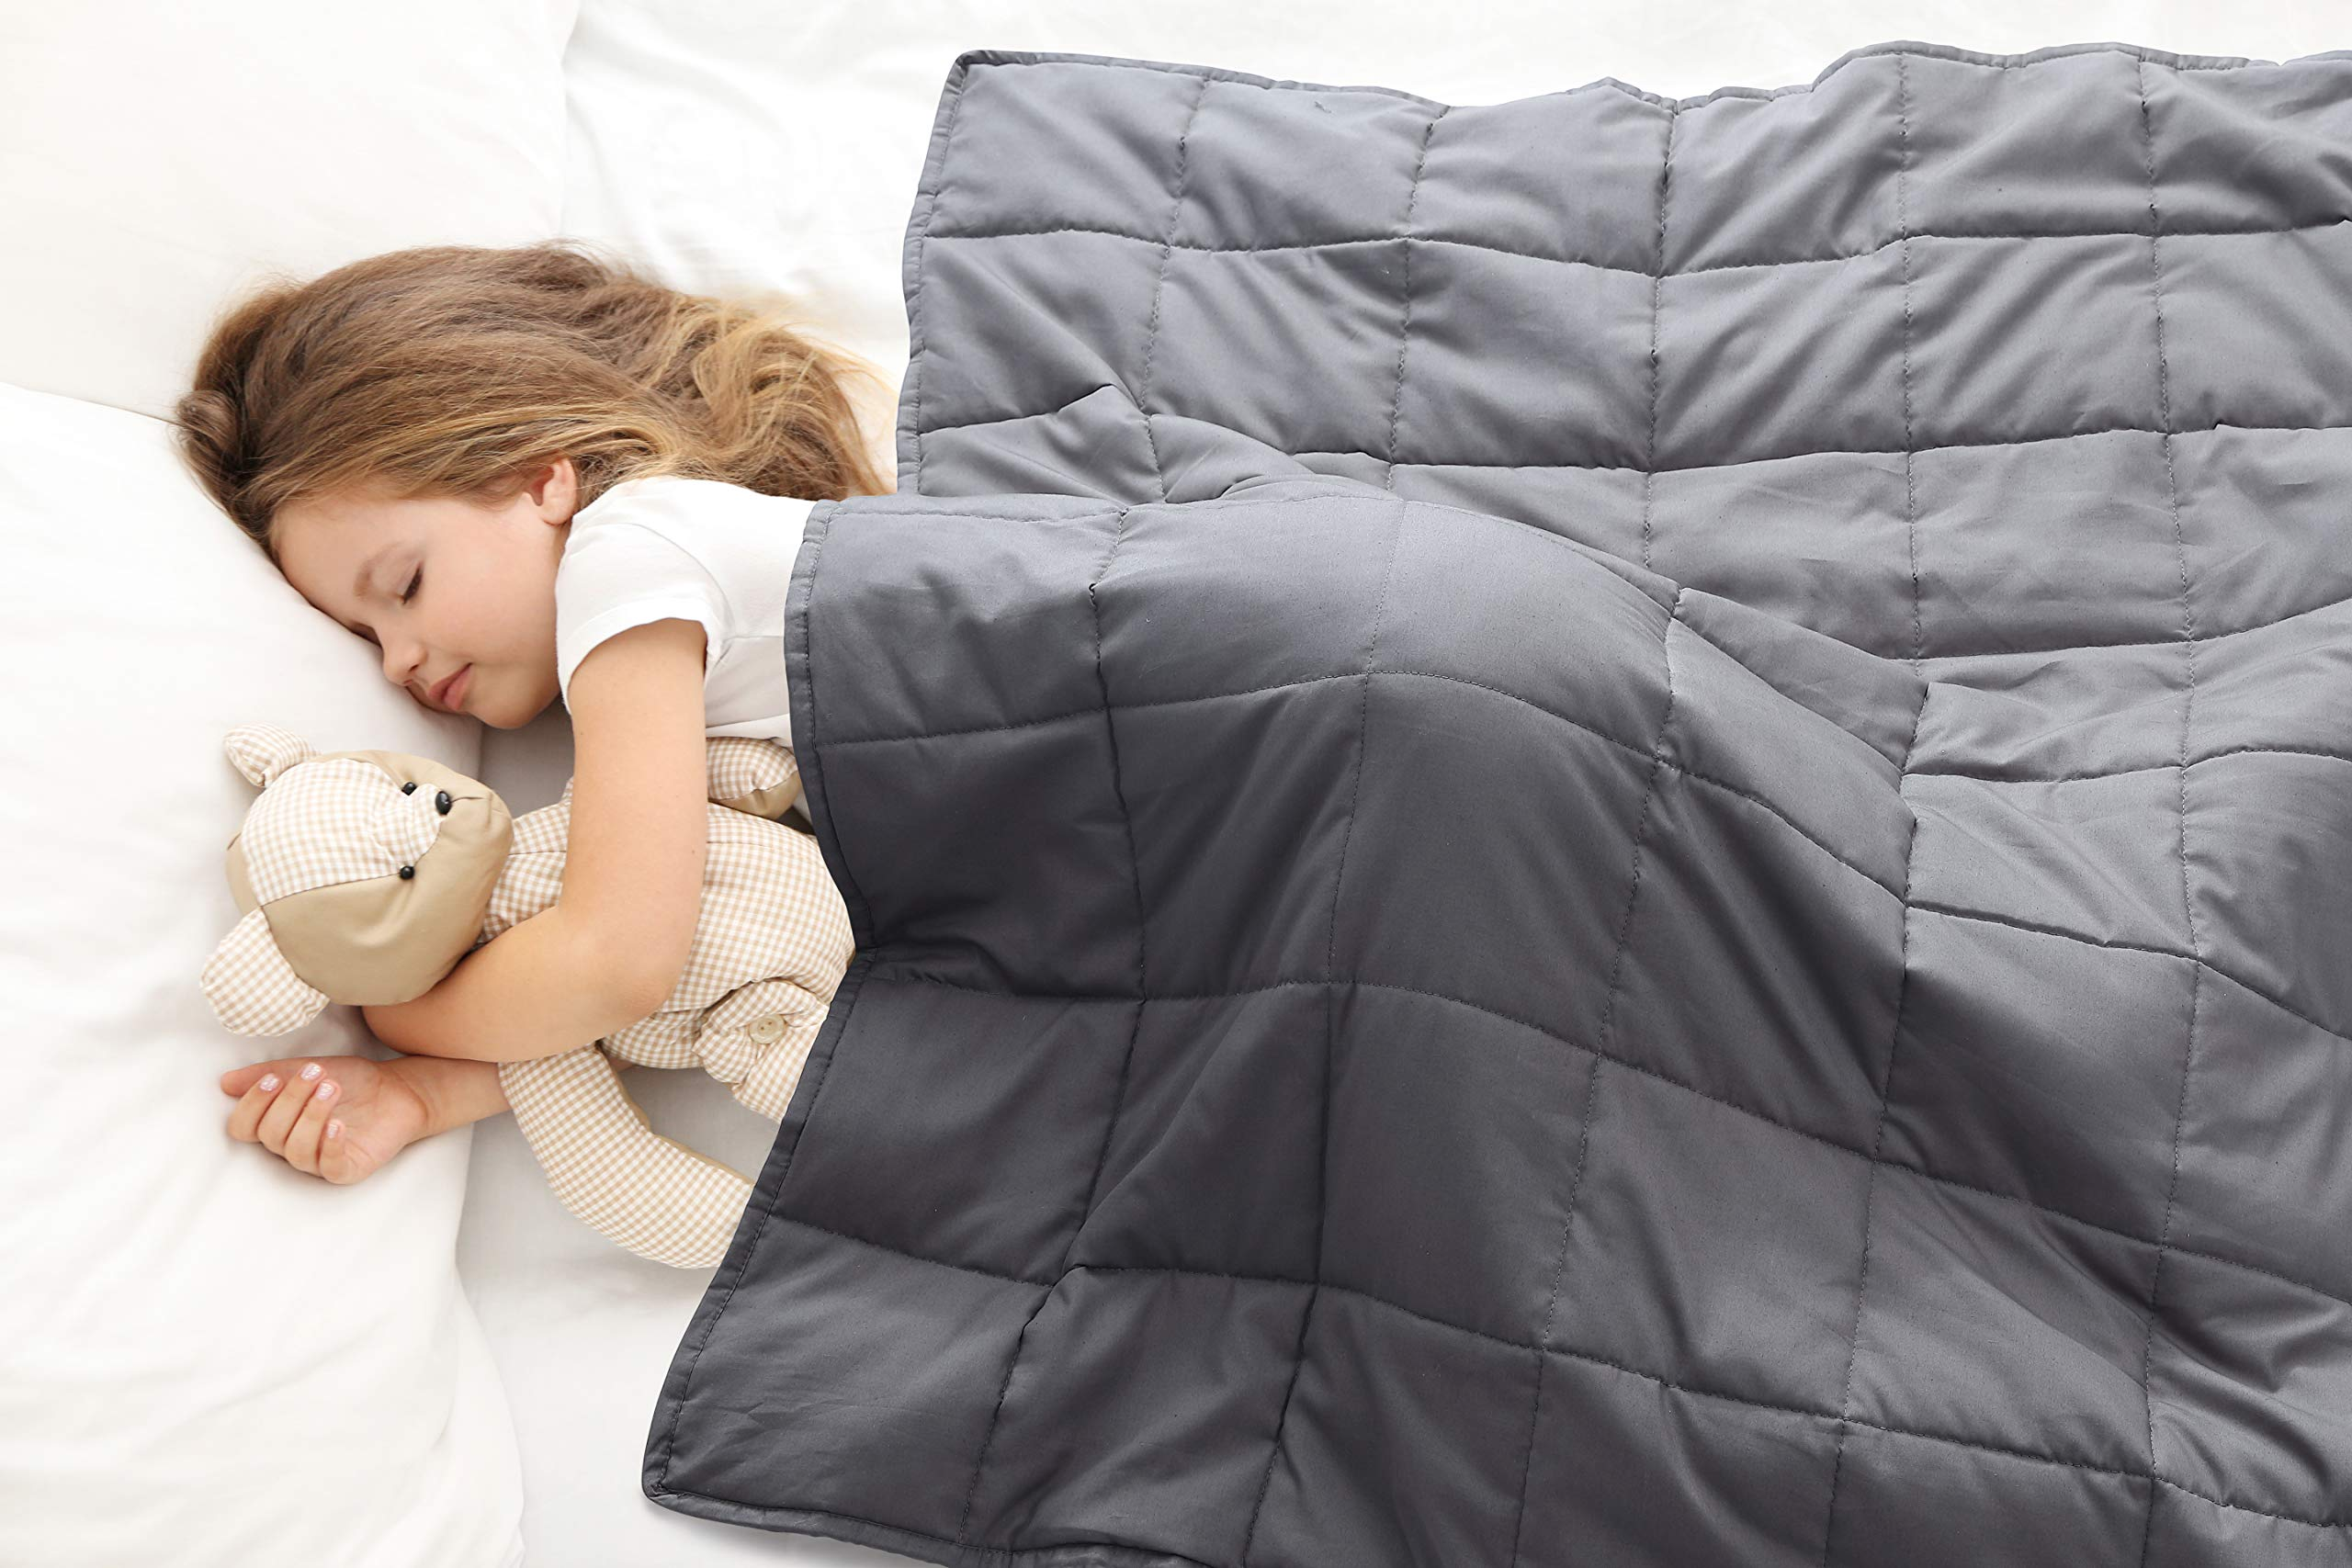 Love's cabin Weighted Blanket 5 lbs for Kids (36''x48'', Grey) 100% Organic Cotton Toddler Weighted Blanket with Glass Beads, Extra Soft Heavy Blanket (Anti-Dirty,Anti-mite,Incredible Touch)